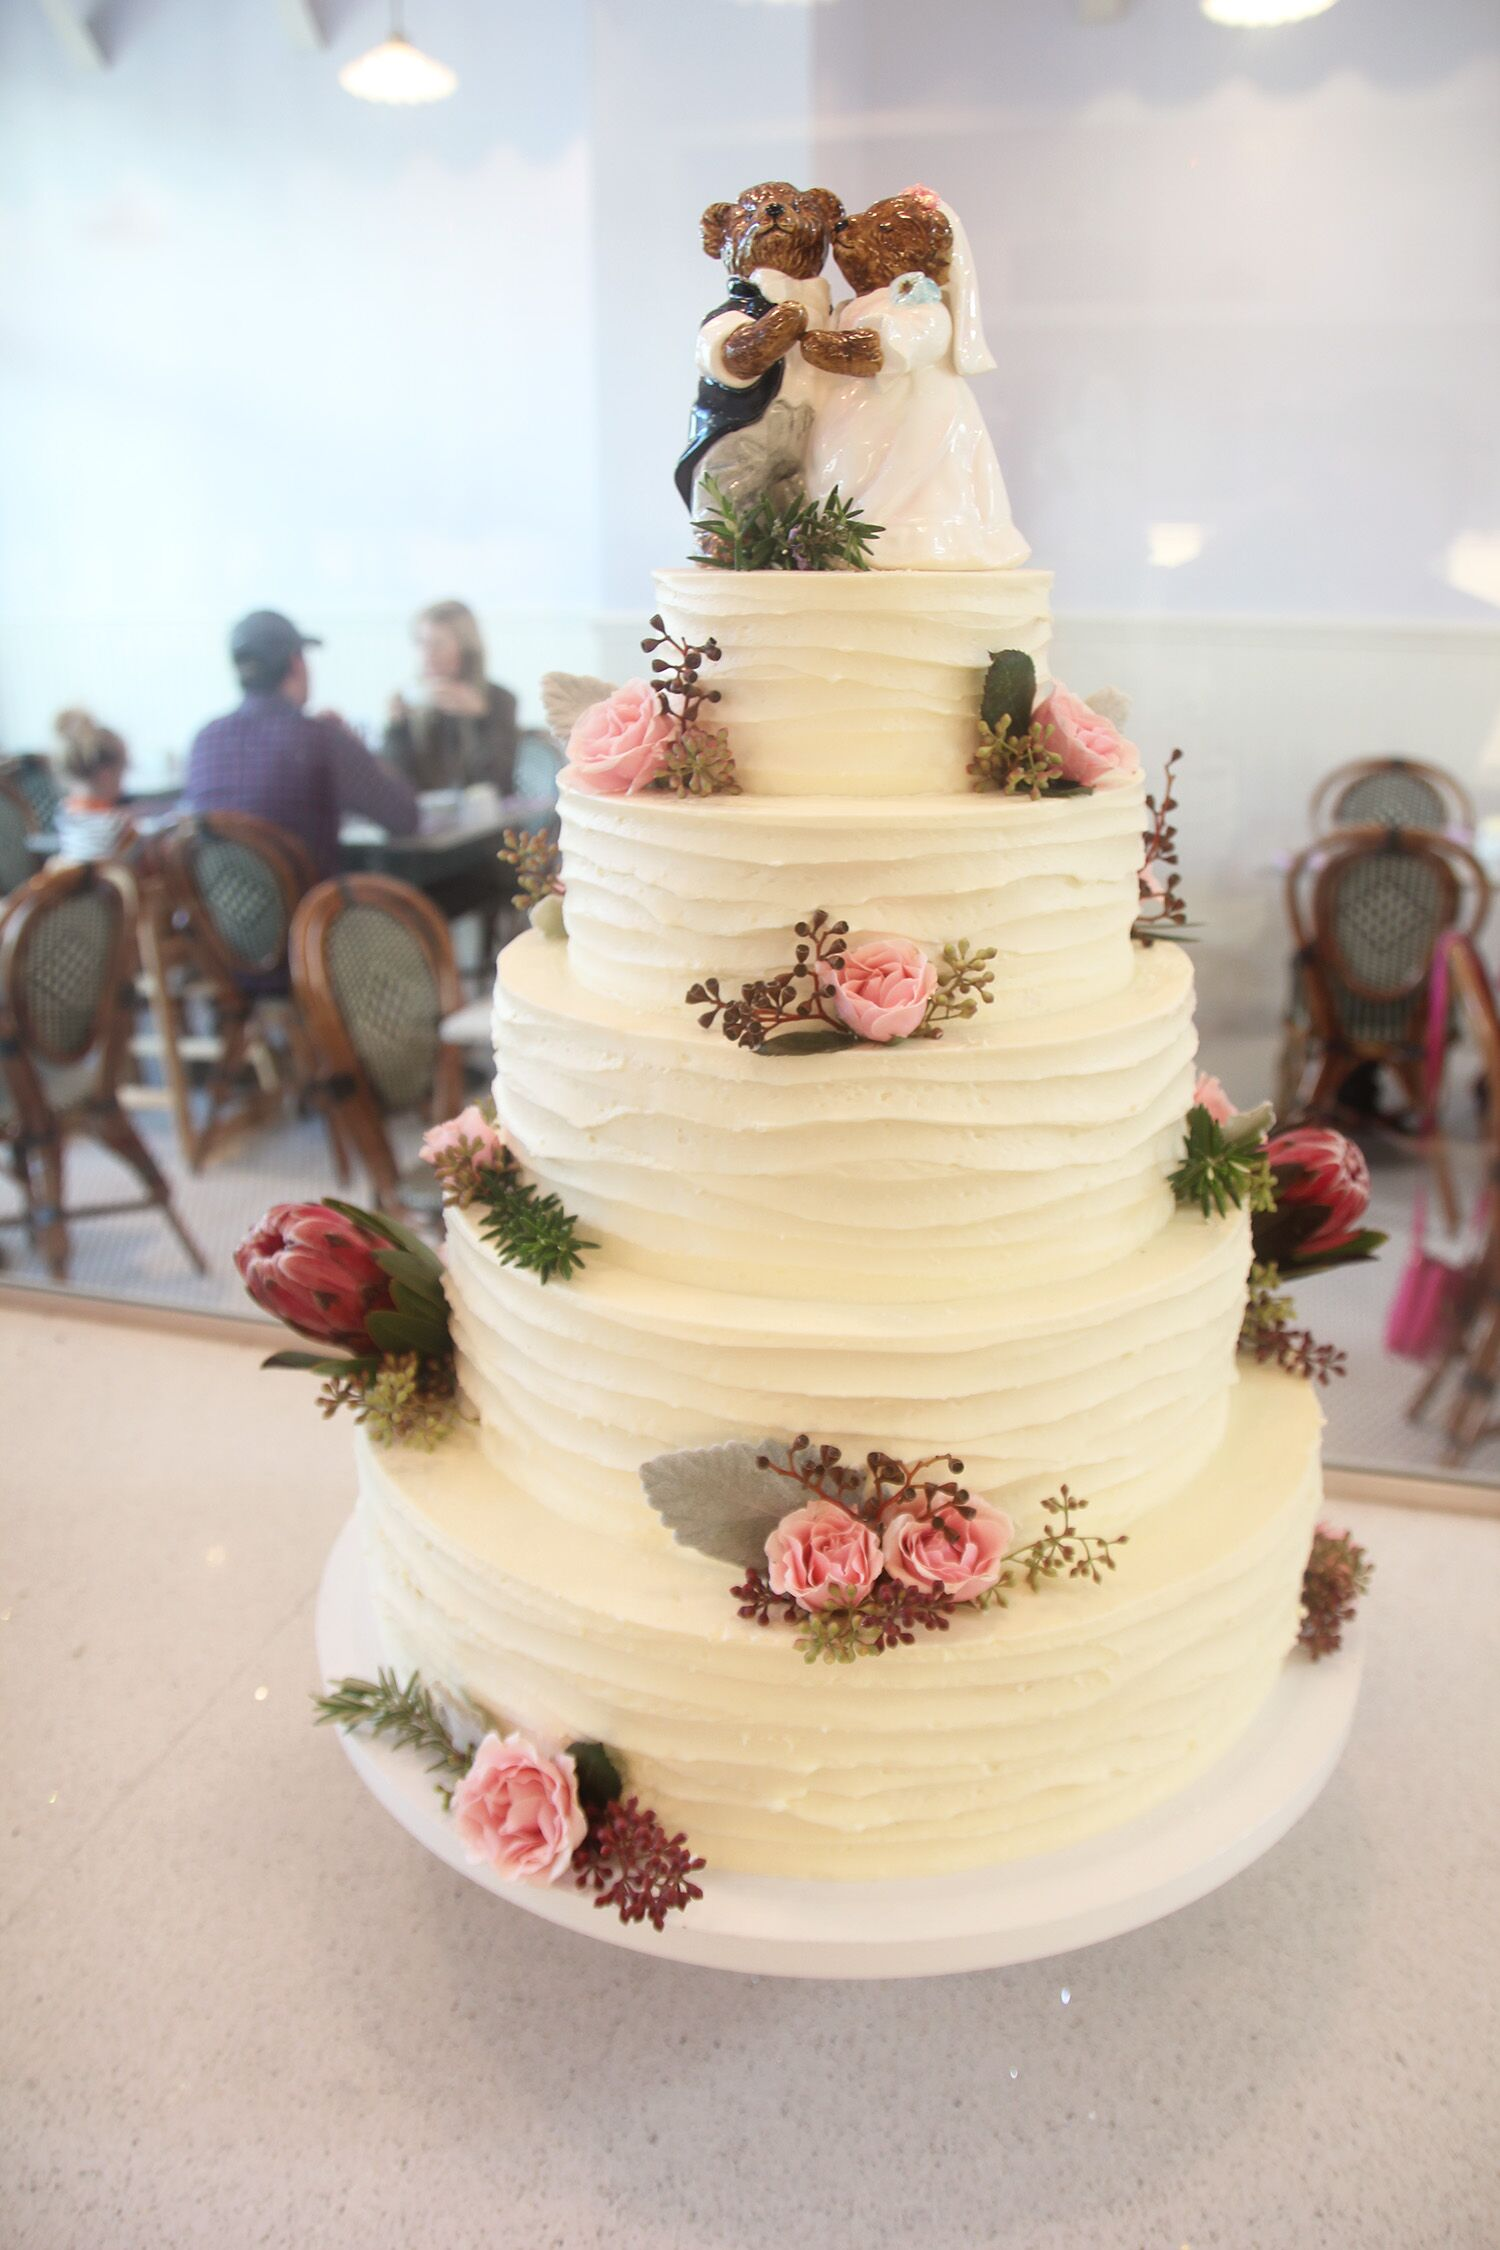 Wedding Cake Bakeries in Los Angeles, CA - The Knot